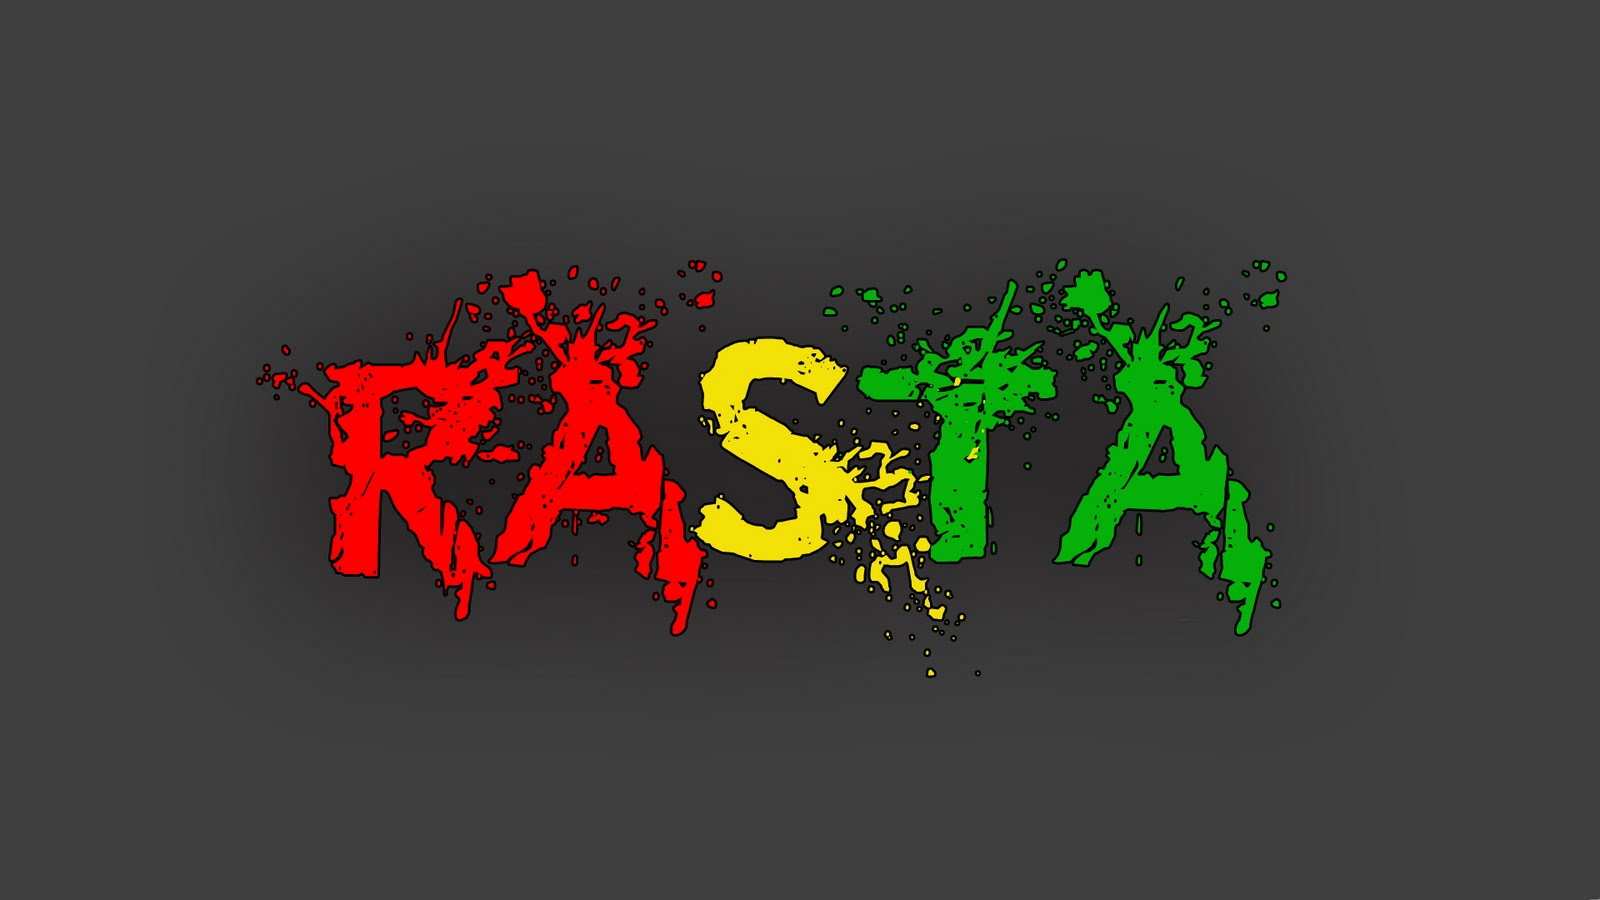 Rasta Wallpaper 1600x900 55795